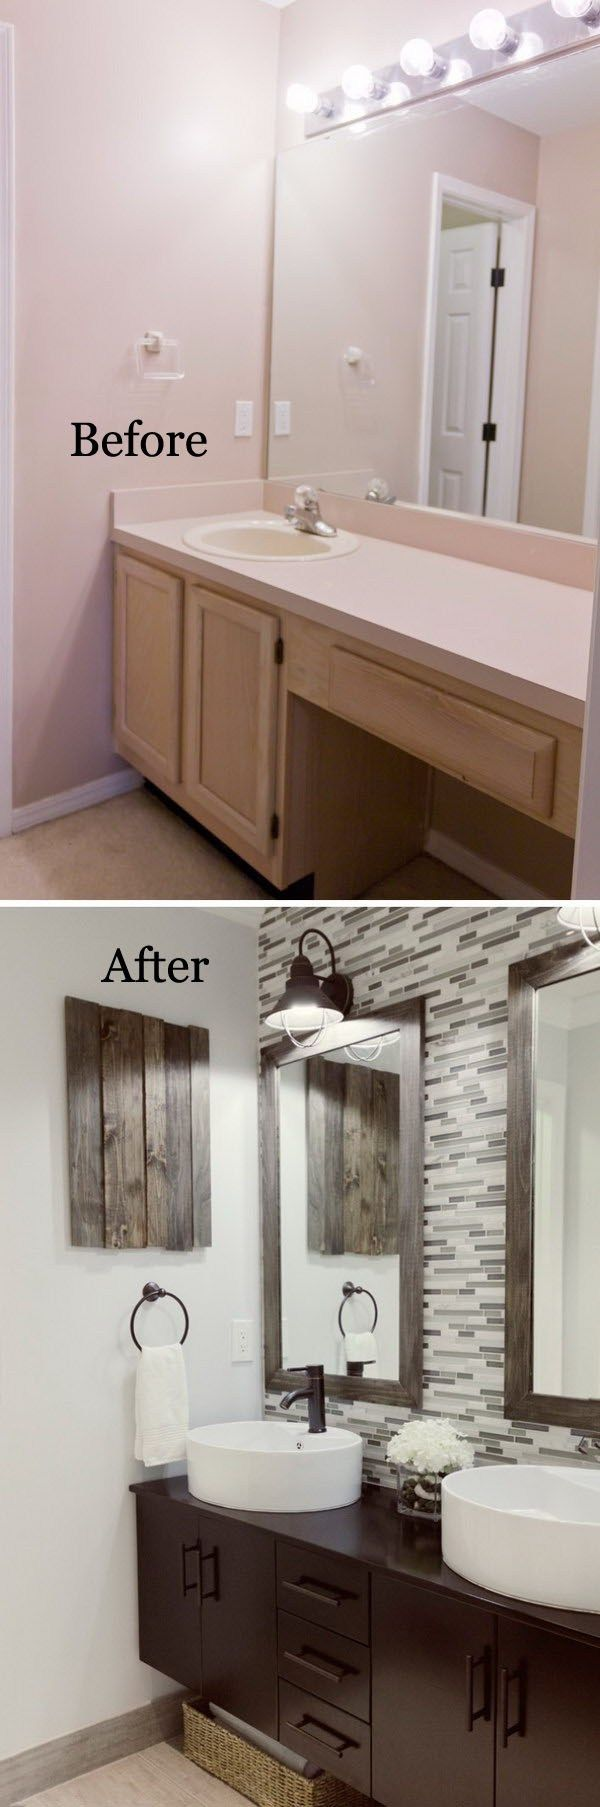 37 Small Bathroom Makeovers Before And After Pics Home Magez Small Bathroom Makeover Small Bathroom Remodel Bathroom Remodel Master